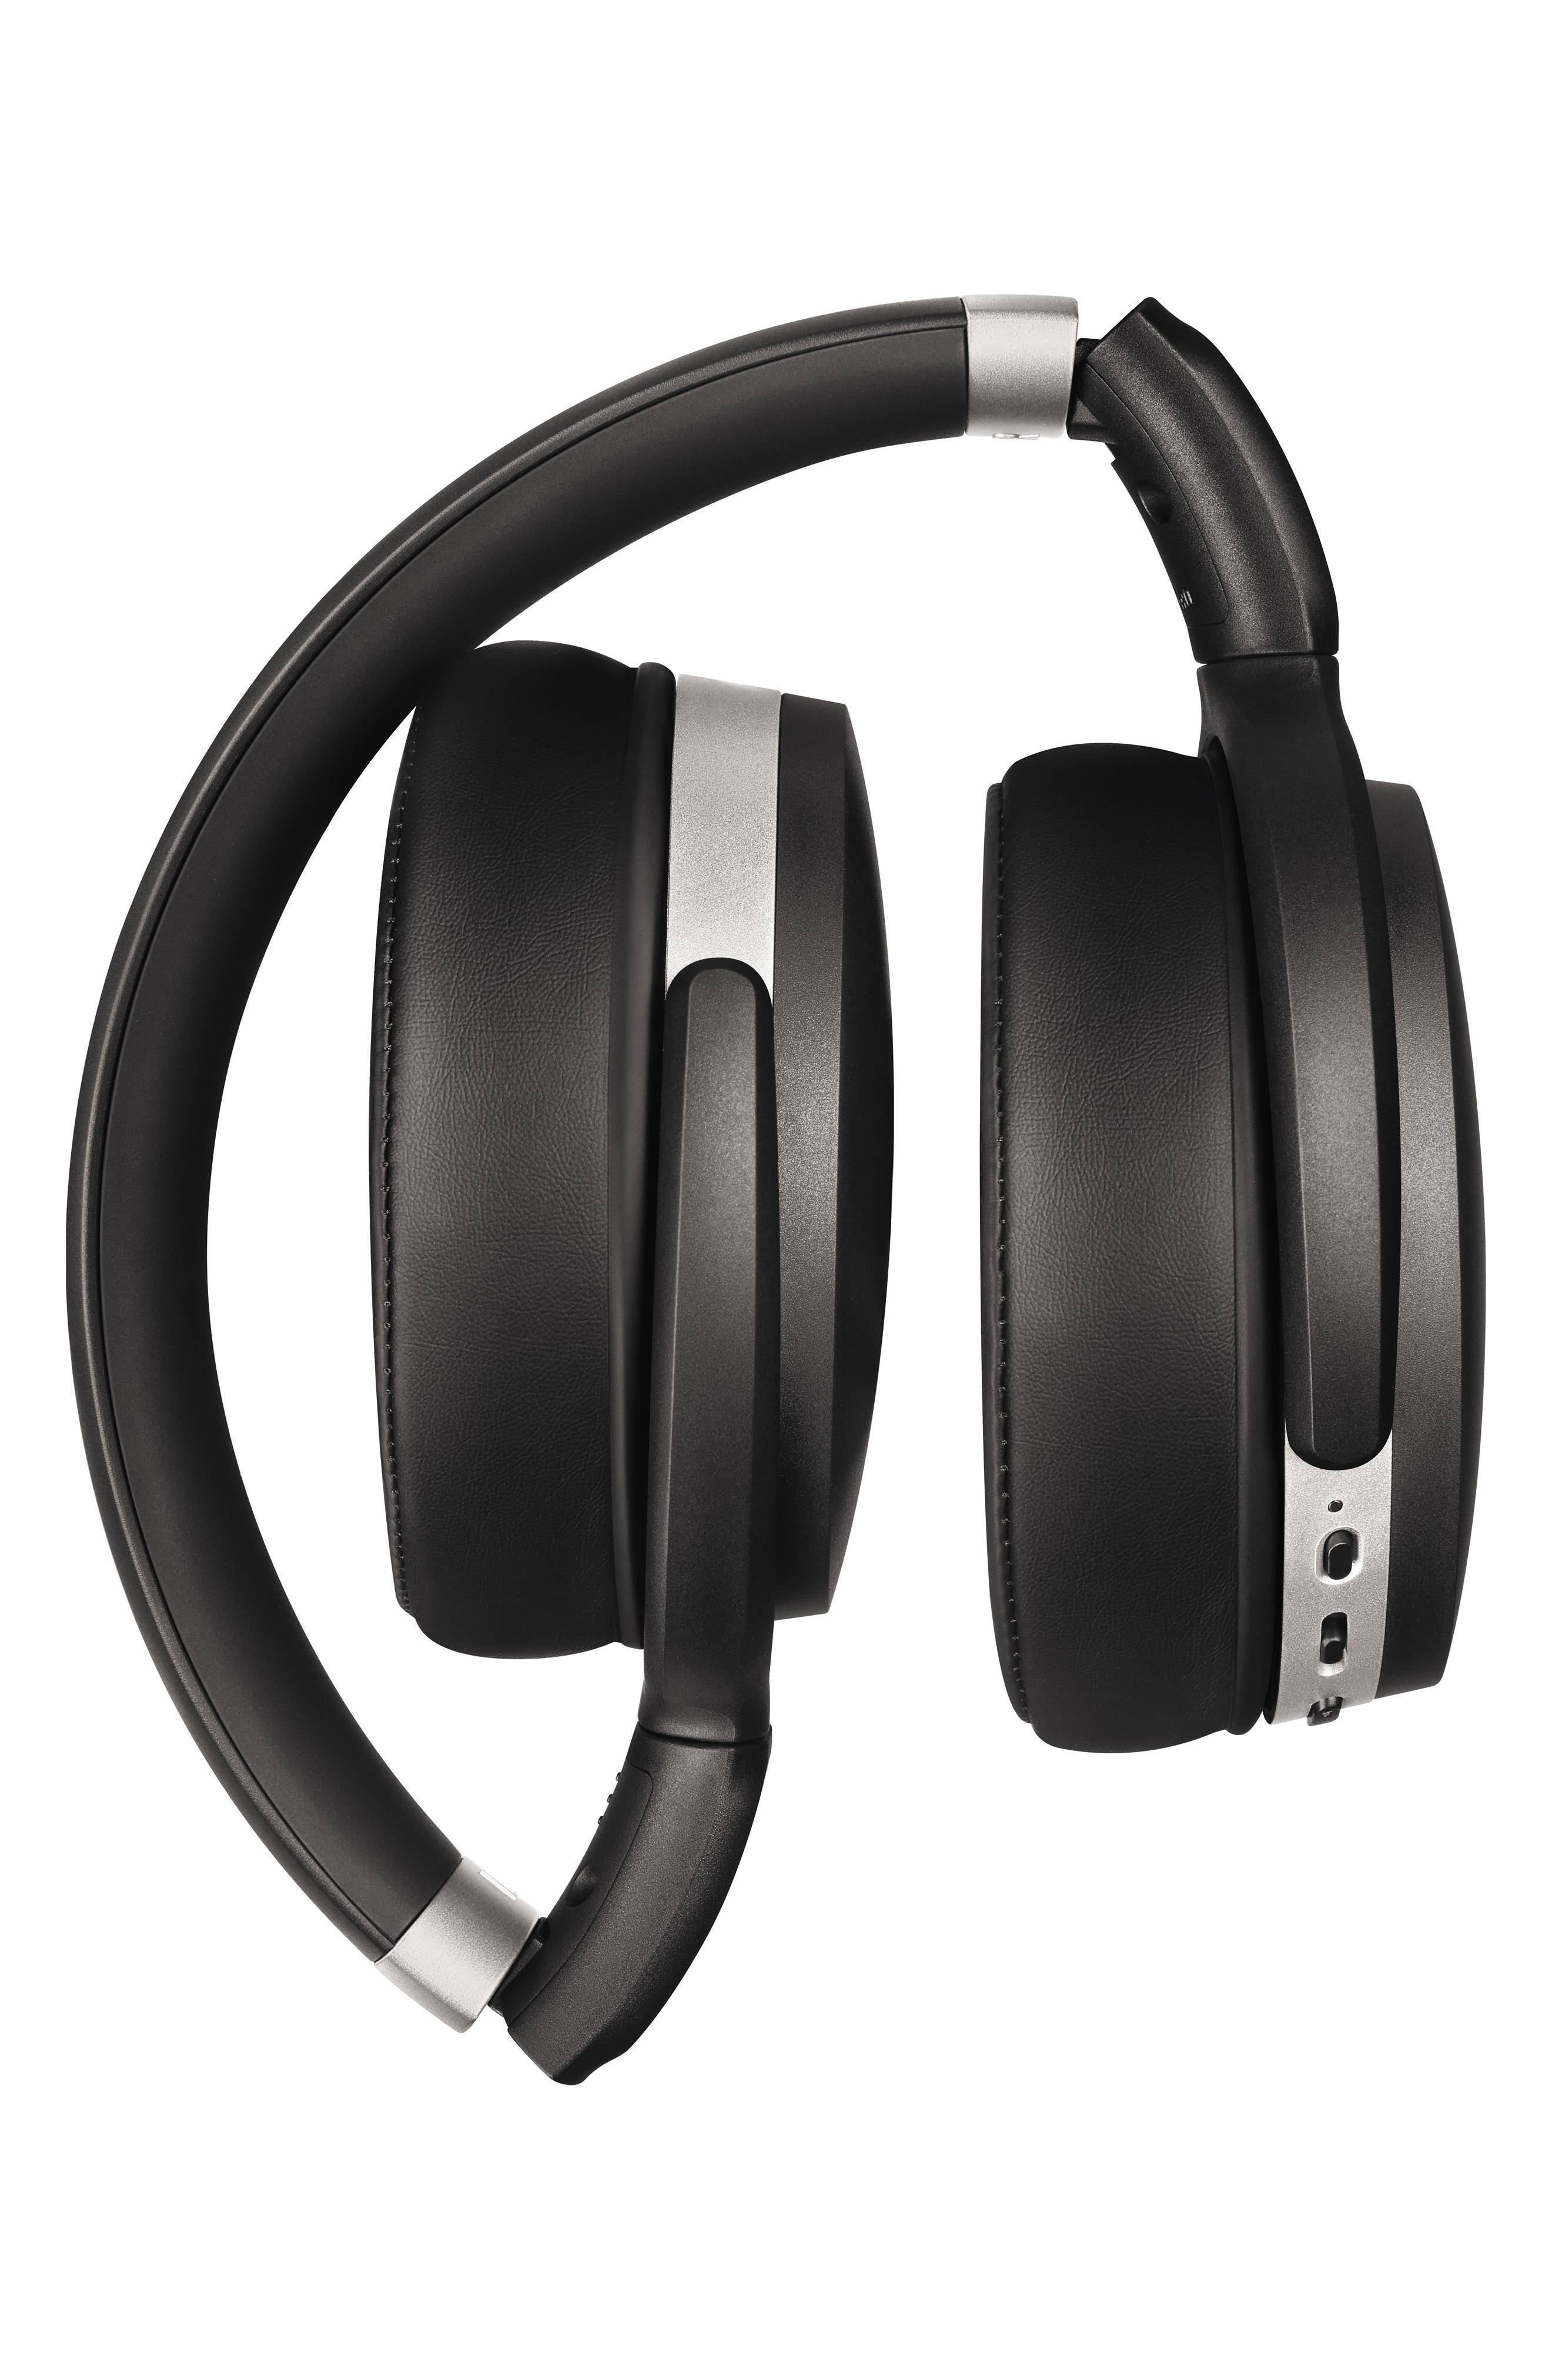 HD 4.50 Bluetooth<sup>®</sup> Noise Cancelling Headphones,                             Alternate thumbnail 3, color,                             BLACK/ SILVER